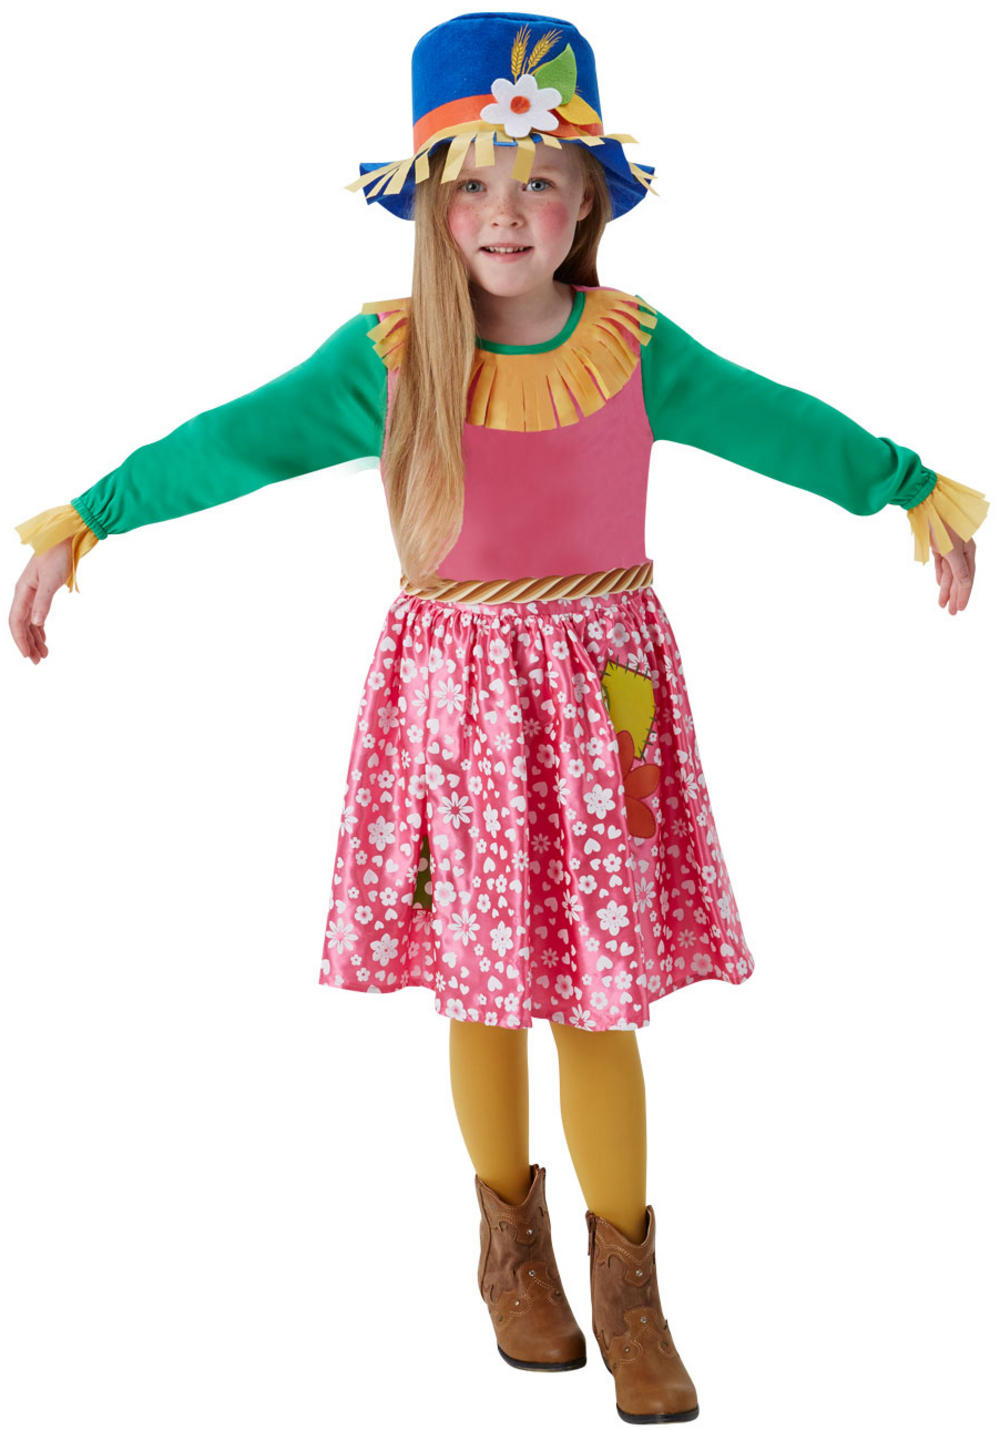 Scarecrow Fancy Dress.jpg